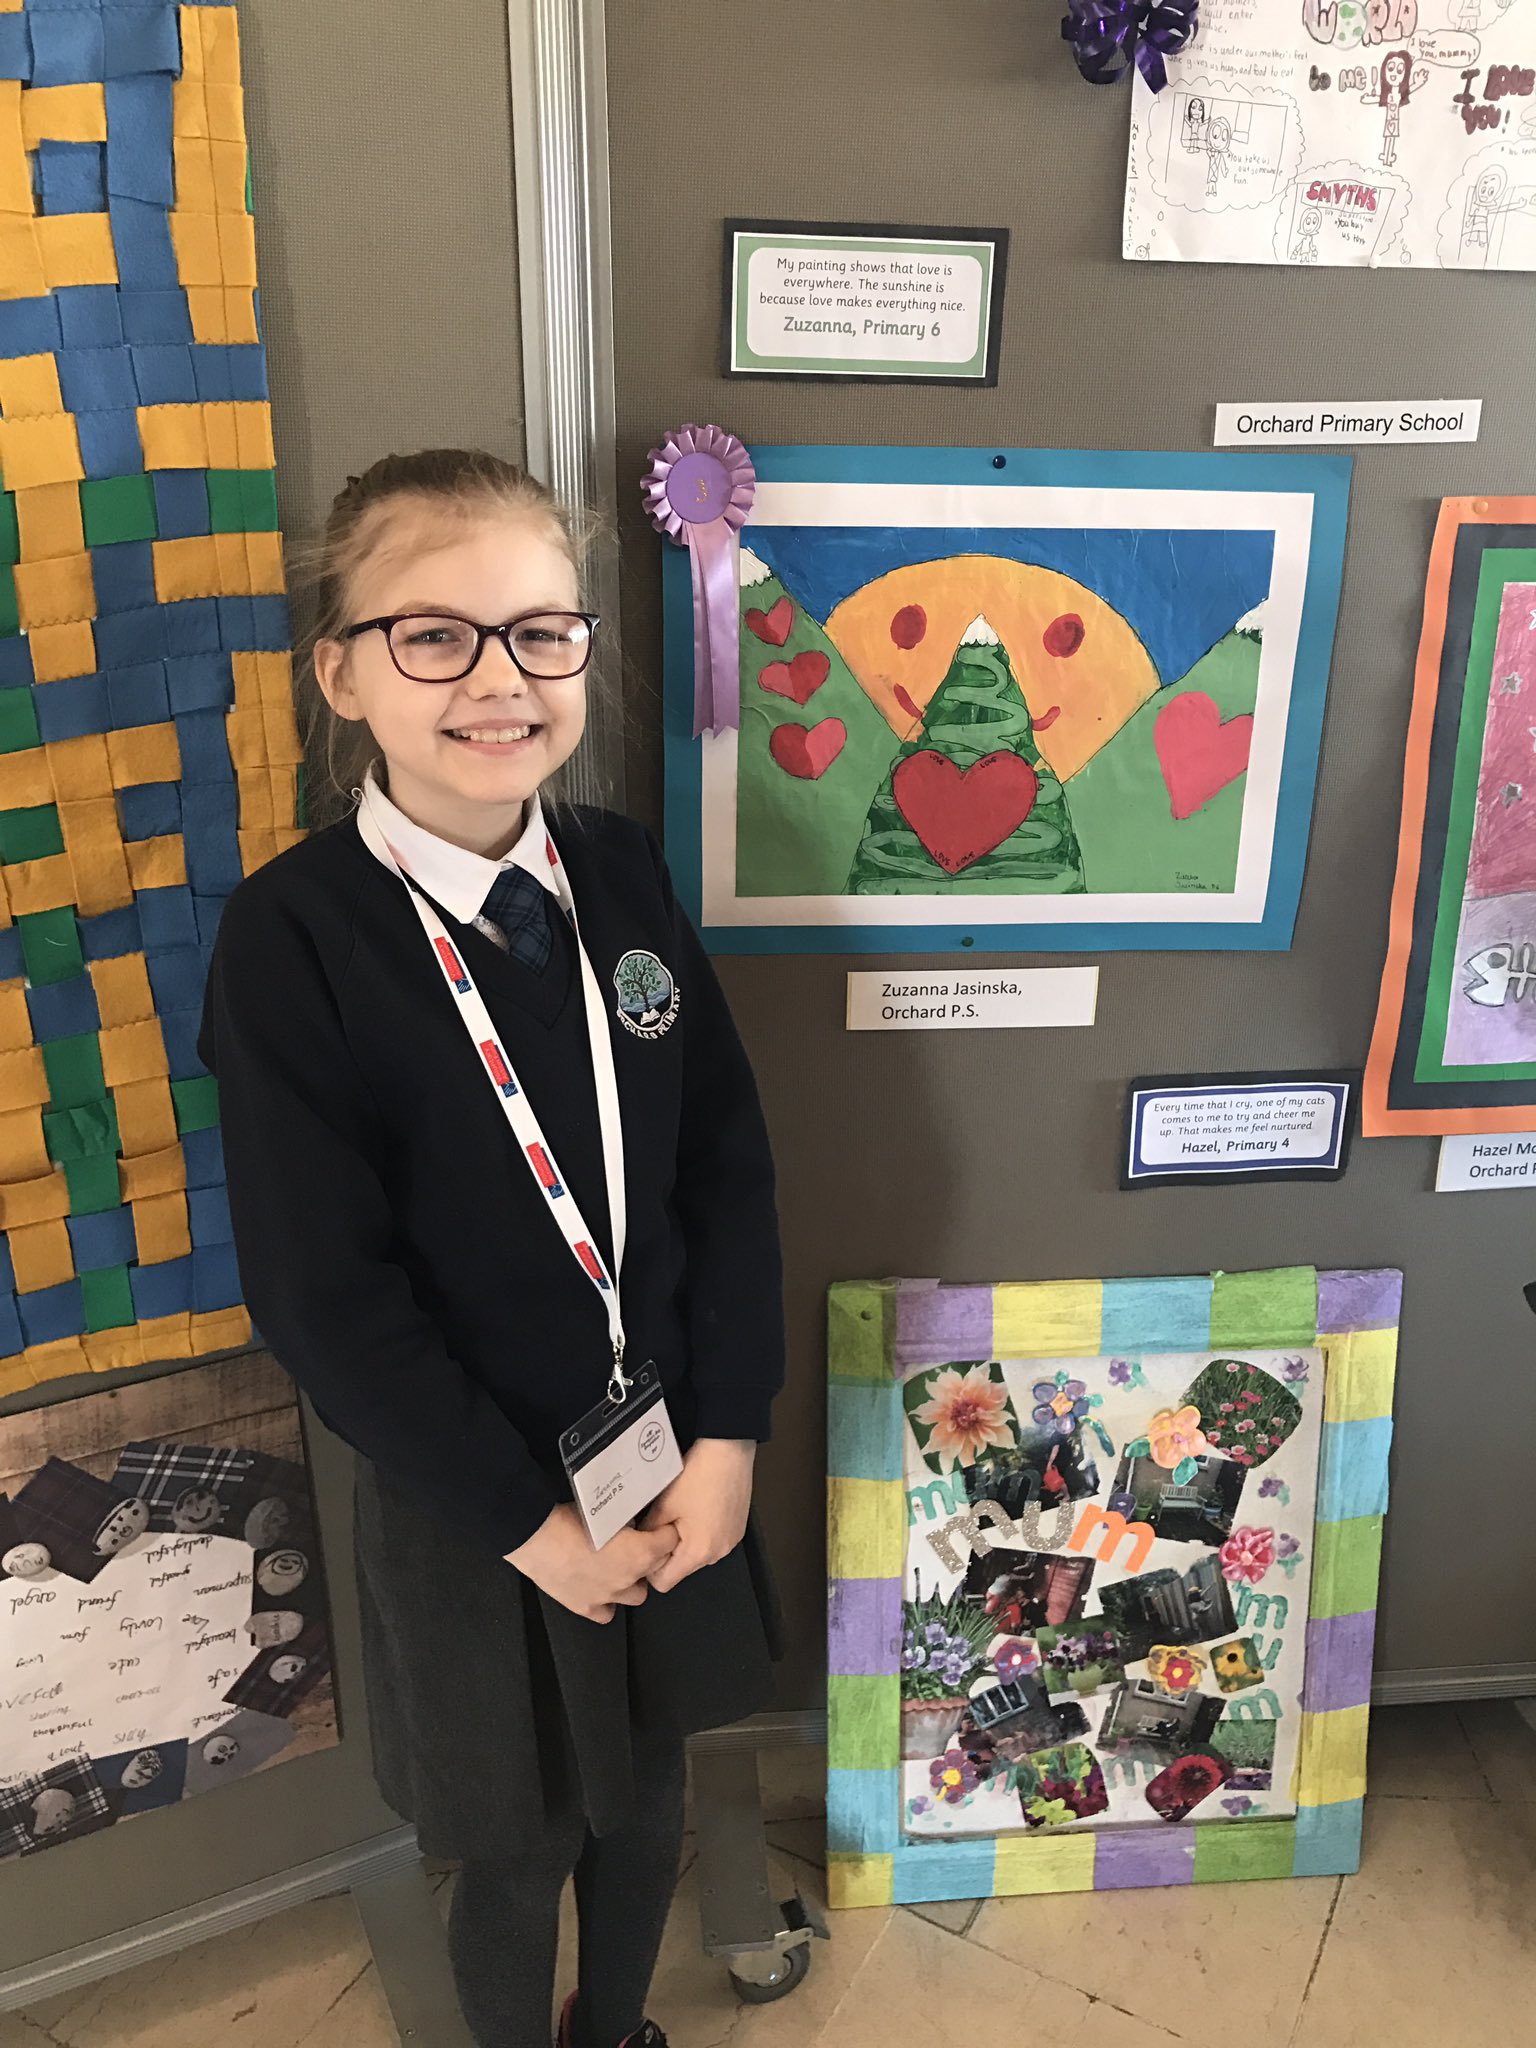 Well done to this P6. So pleased we could be there today as she won 3rd place @volactionfund @americanmothers #ArtsVAF17 #nurture 🎨😊 https://t.co/BXBtNdZc3W